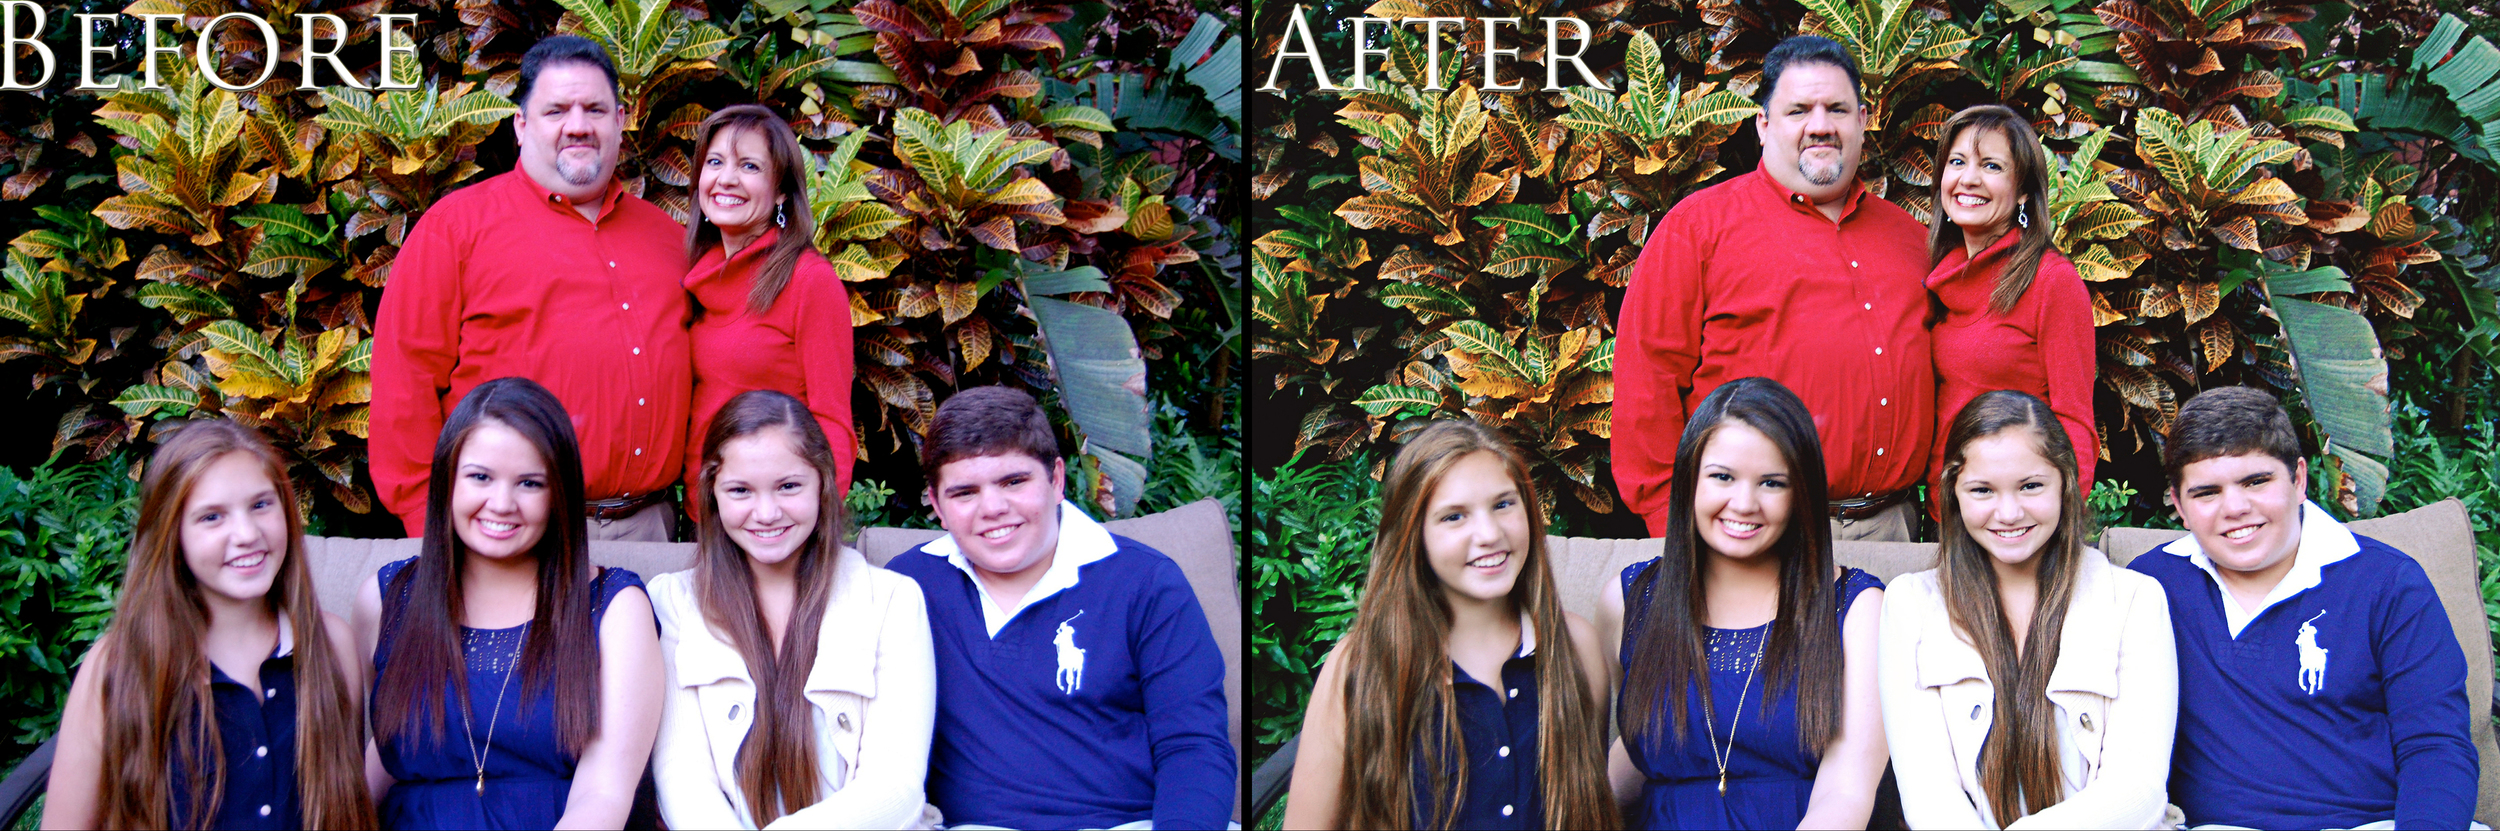 Fernandez Family || Before & After